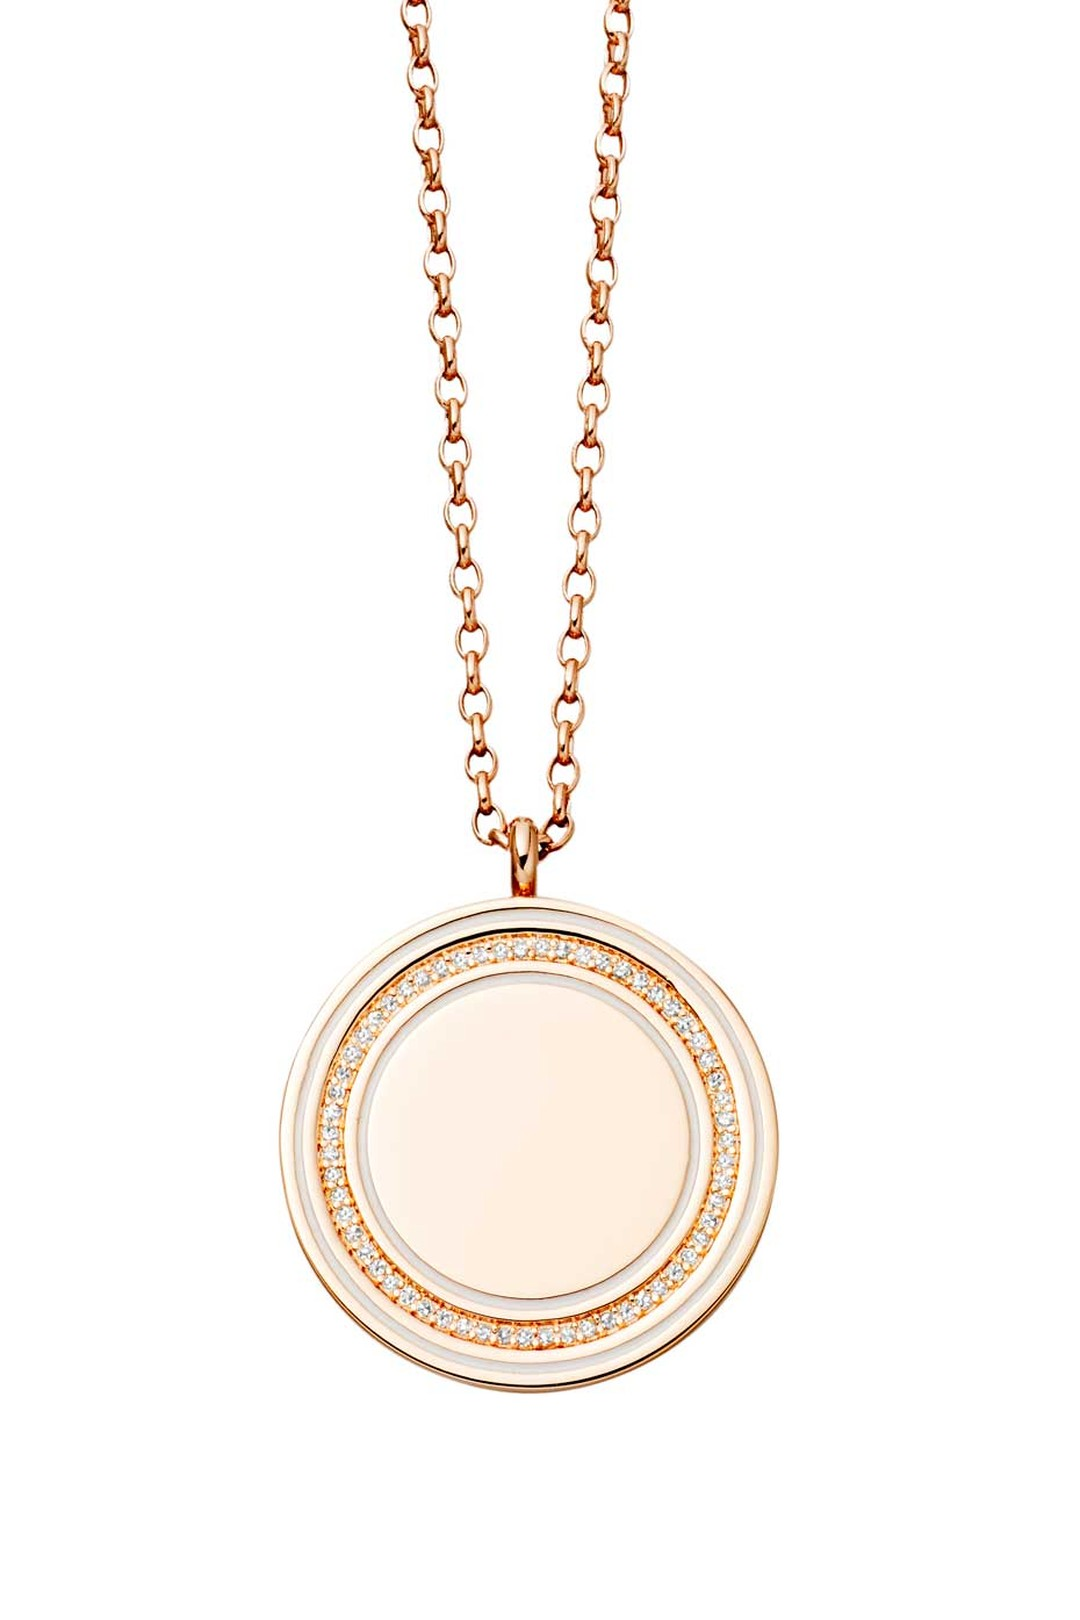 Astley Clarke Giant Moonlight Cosmos locket in rose gold with diamonds (£1,950).